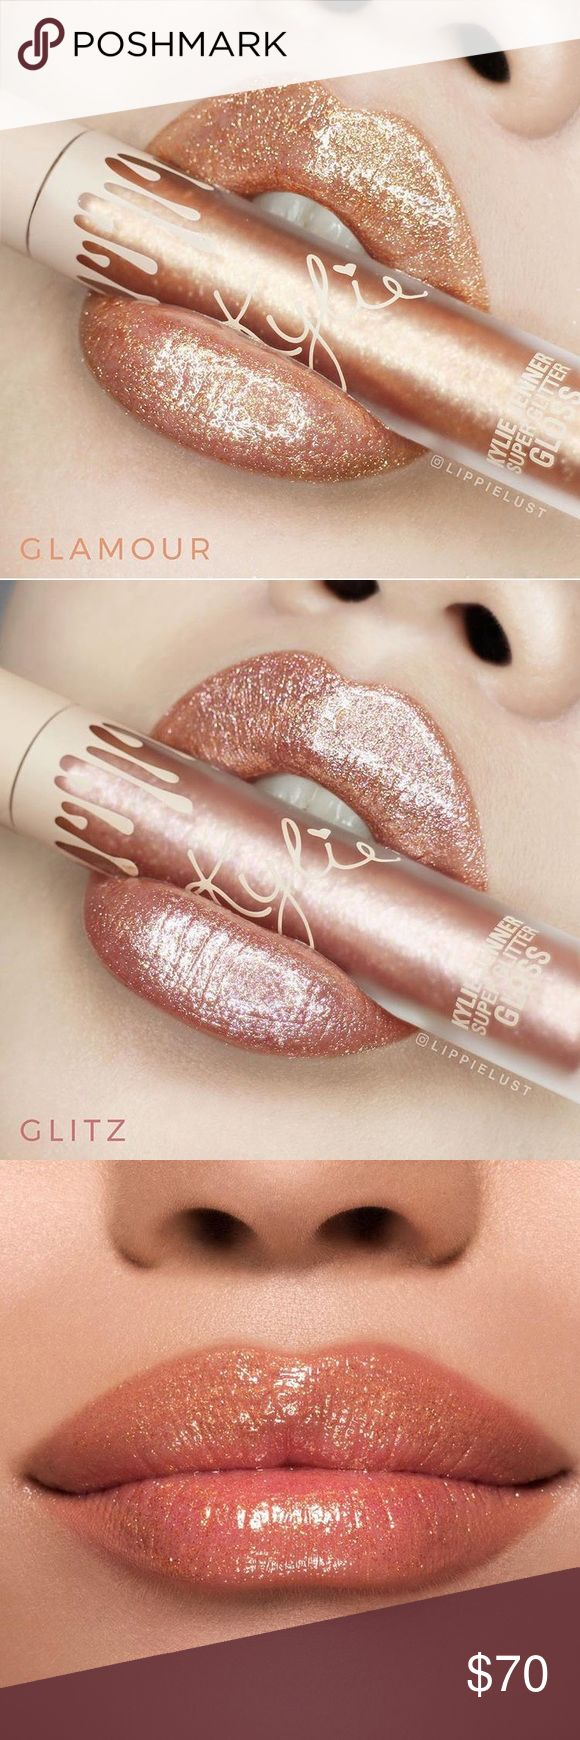 Kylie glosses Kylie limited edition vacation lip gloss. New in box. Original purchased from kylie cosmetics.com glitz and glamour Kylie Cosmetics Makeup Lipstick